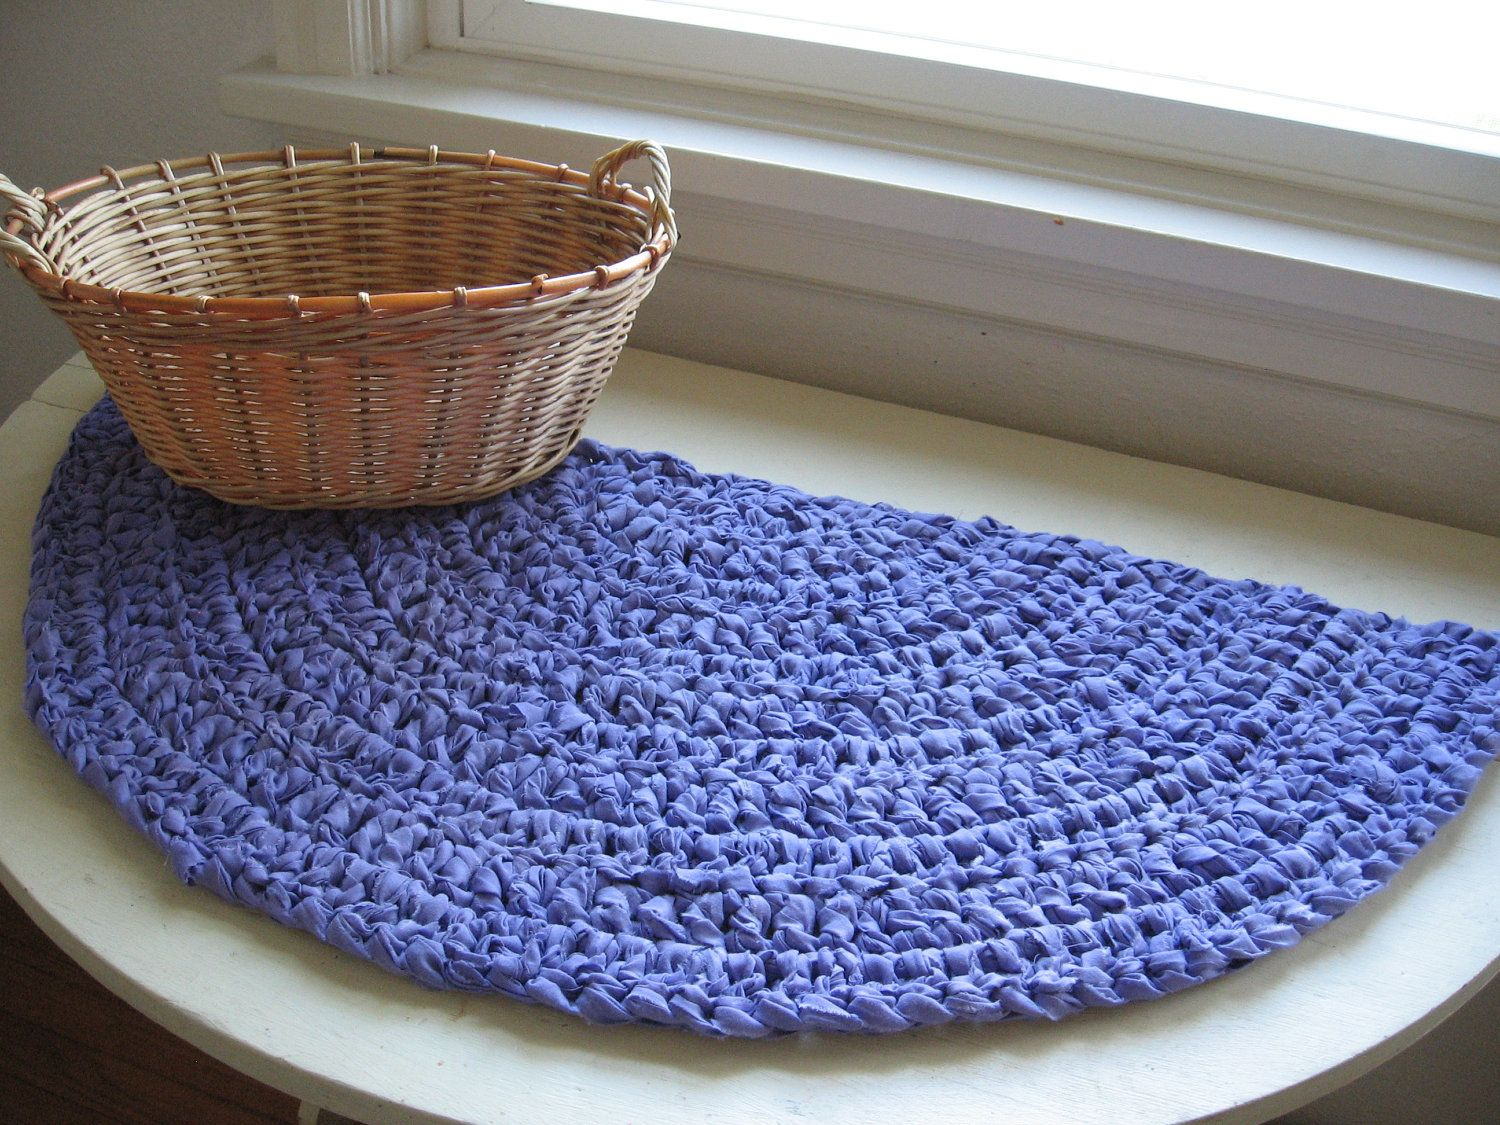 Modern Crochet Rug Half Moon Crocheted Rag Or Table Mat Upcycled Lavender Fabric